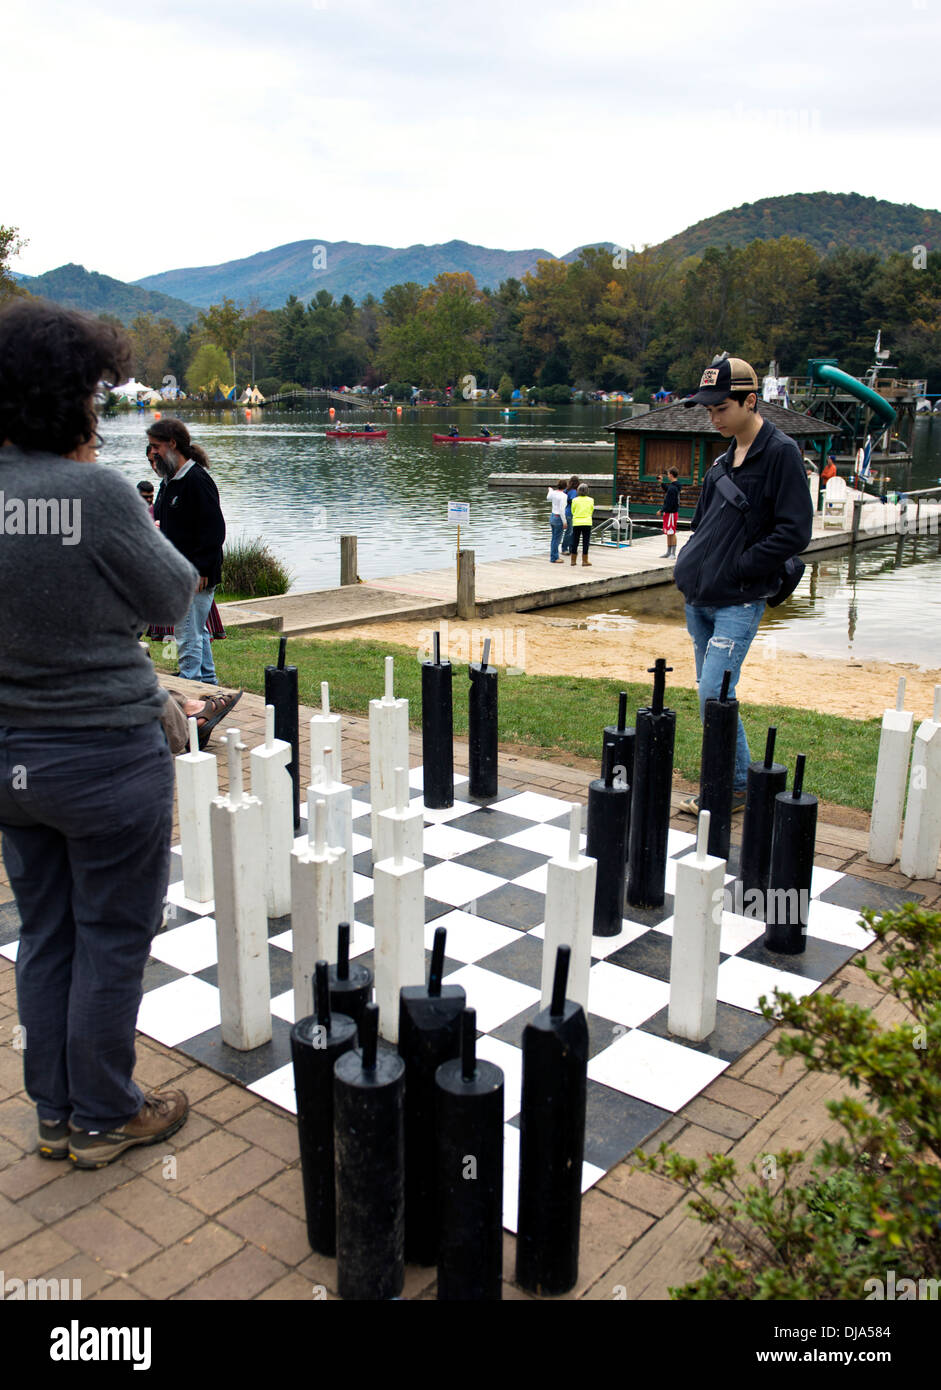 People playing chess on an oversize game board at the Leaf Festival (Lake Eden Arts Festival) Black Mountain, North Carolina - Stock Image